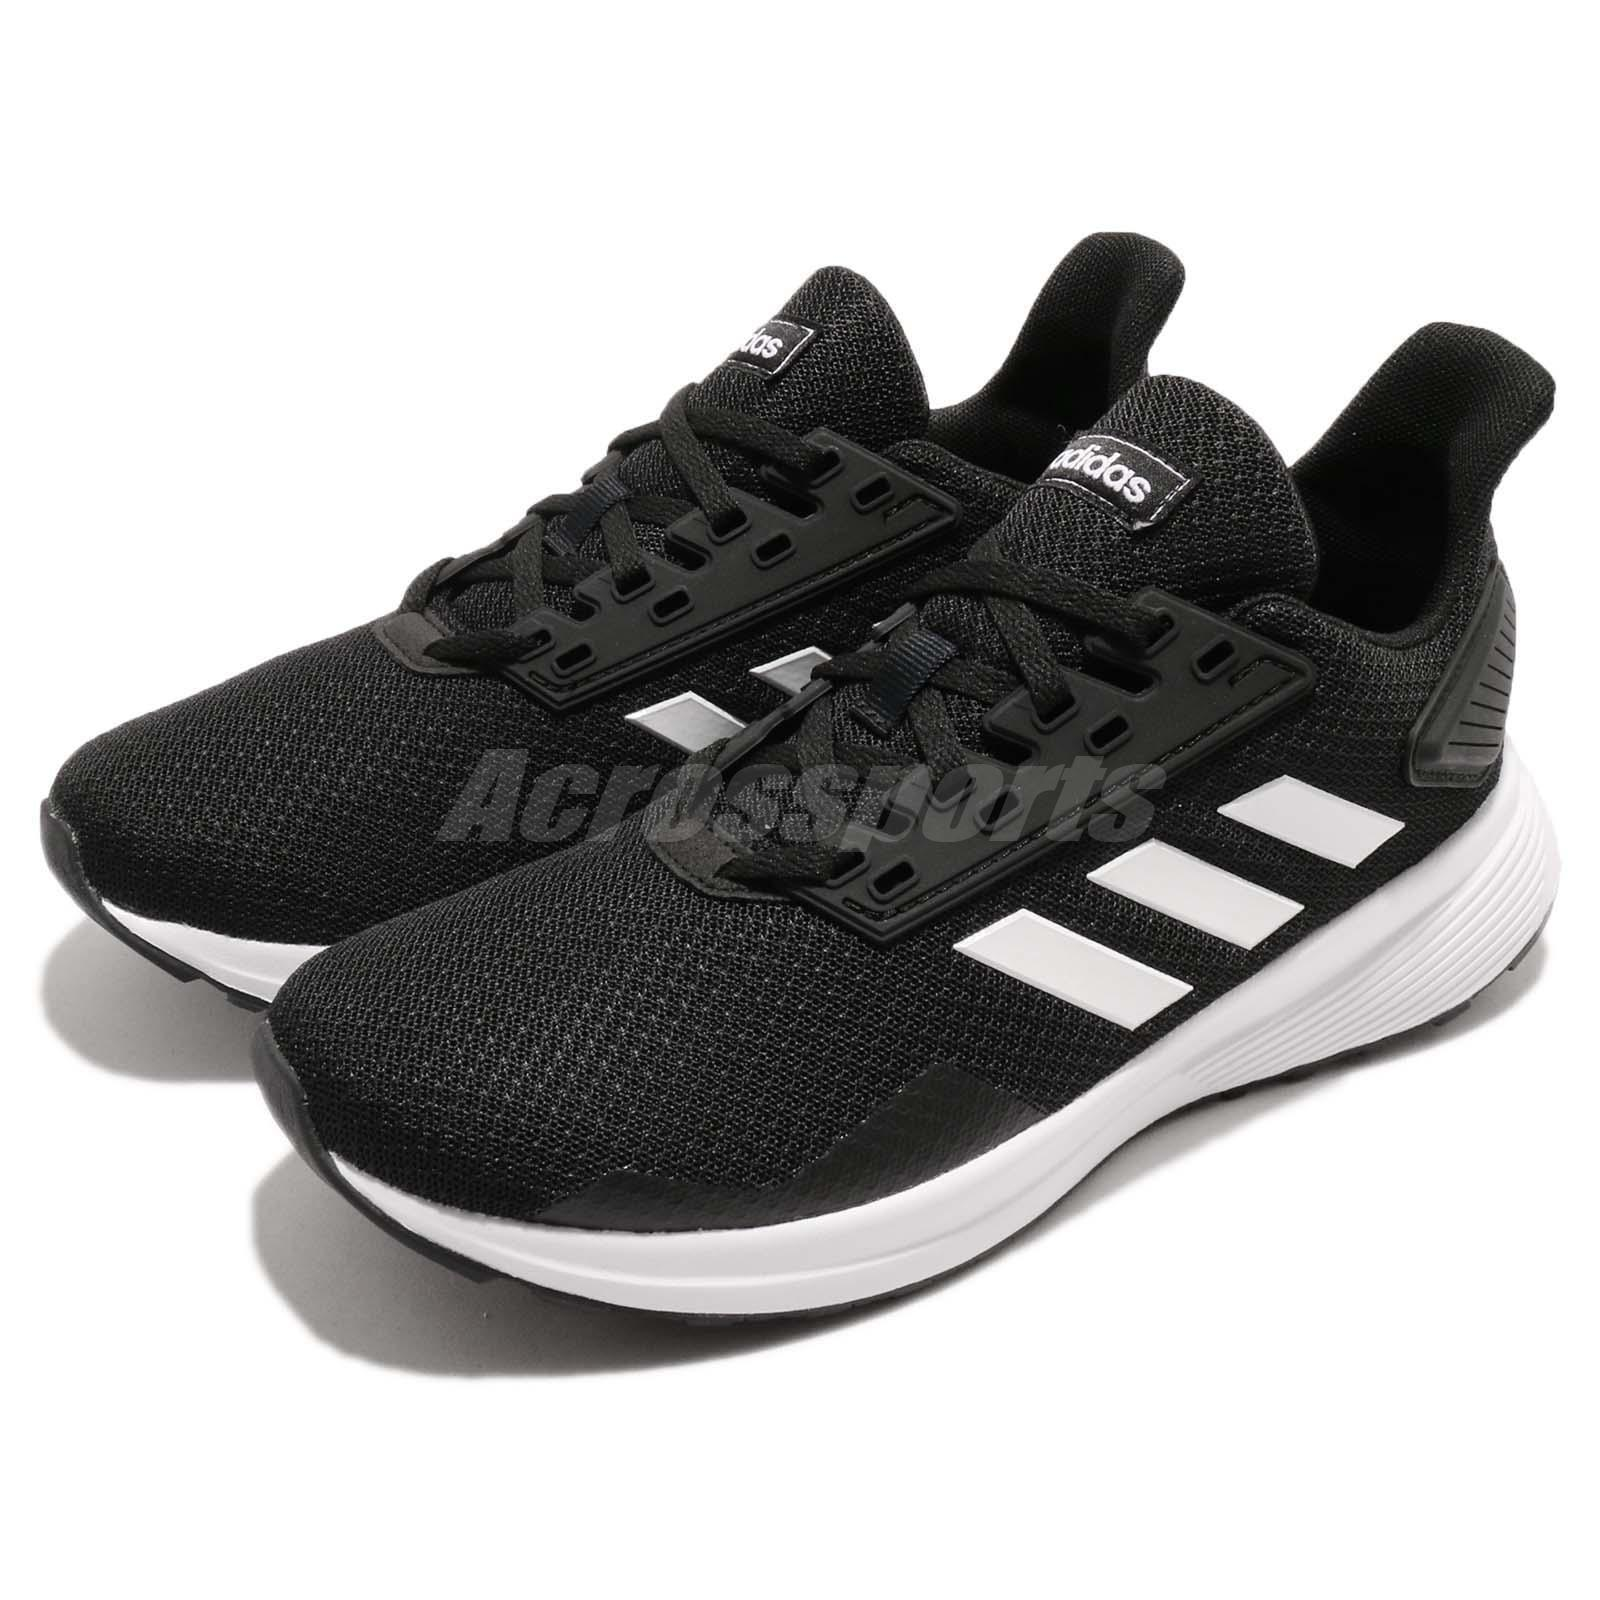 adidas Crazymove CF W noir blanc Femme Cross Training chaussures Sneakers AQ1974